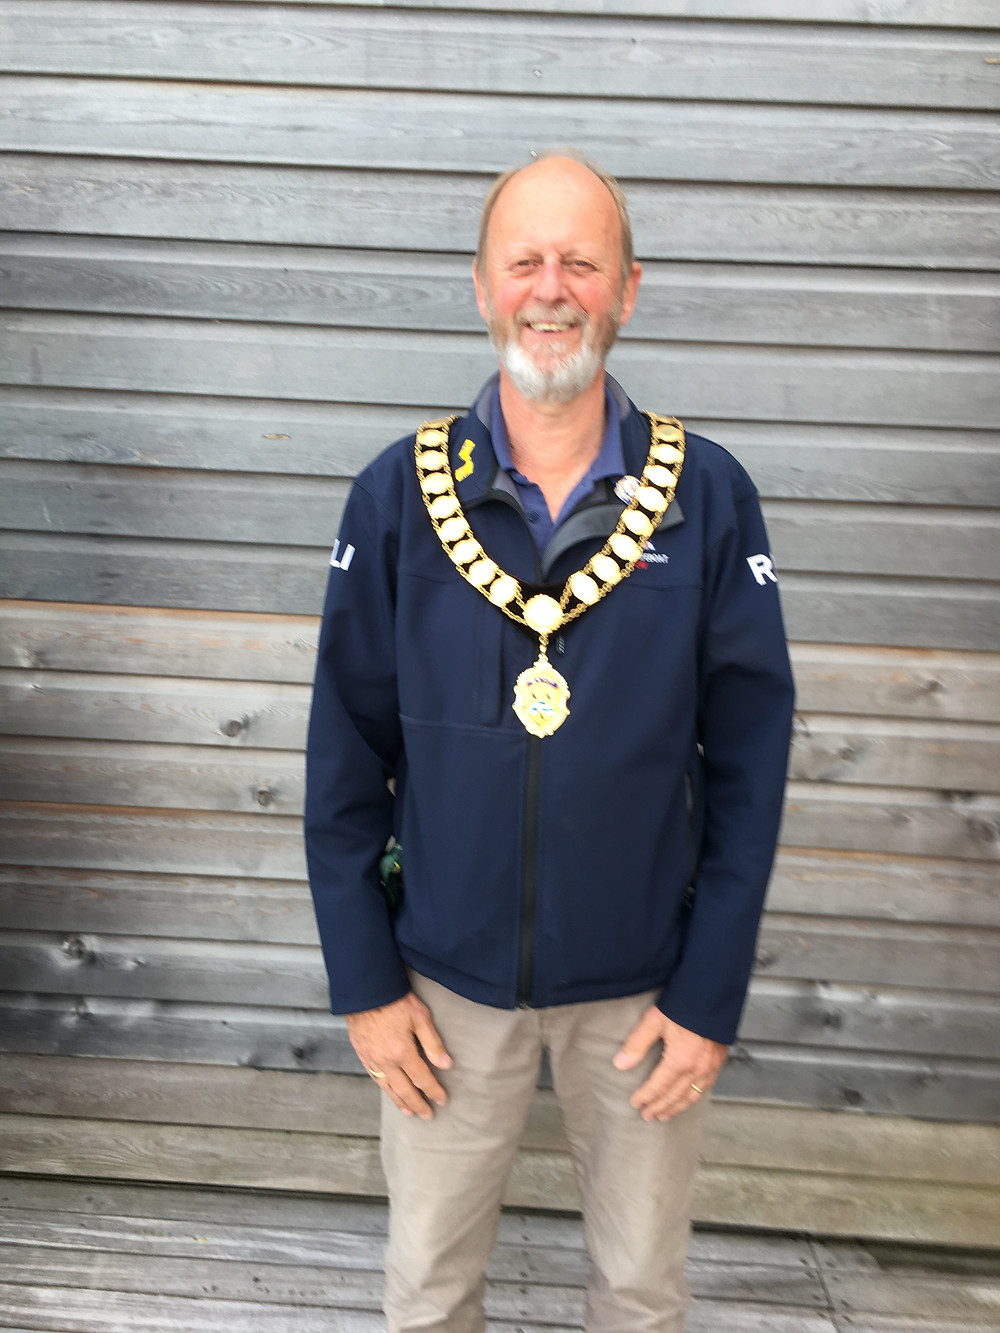 Richard Leeds, Cromer Town Mayor